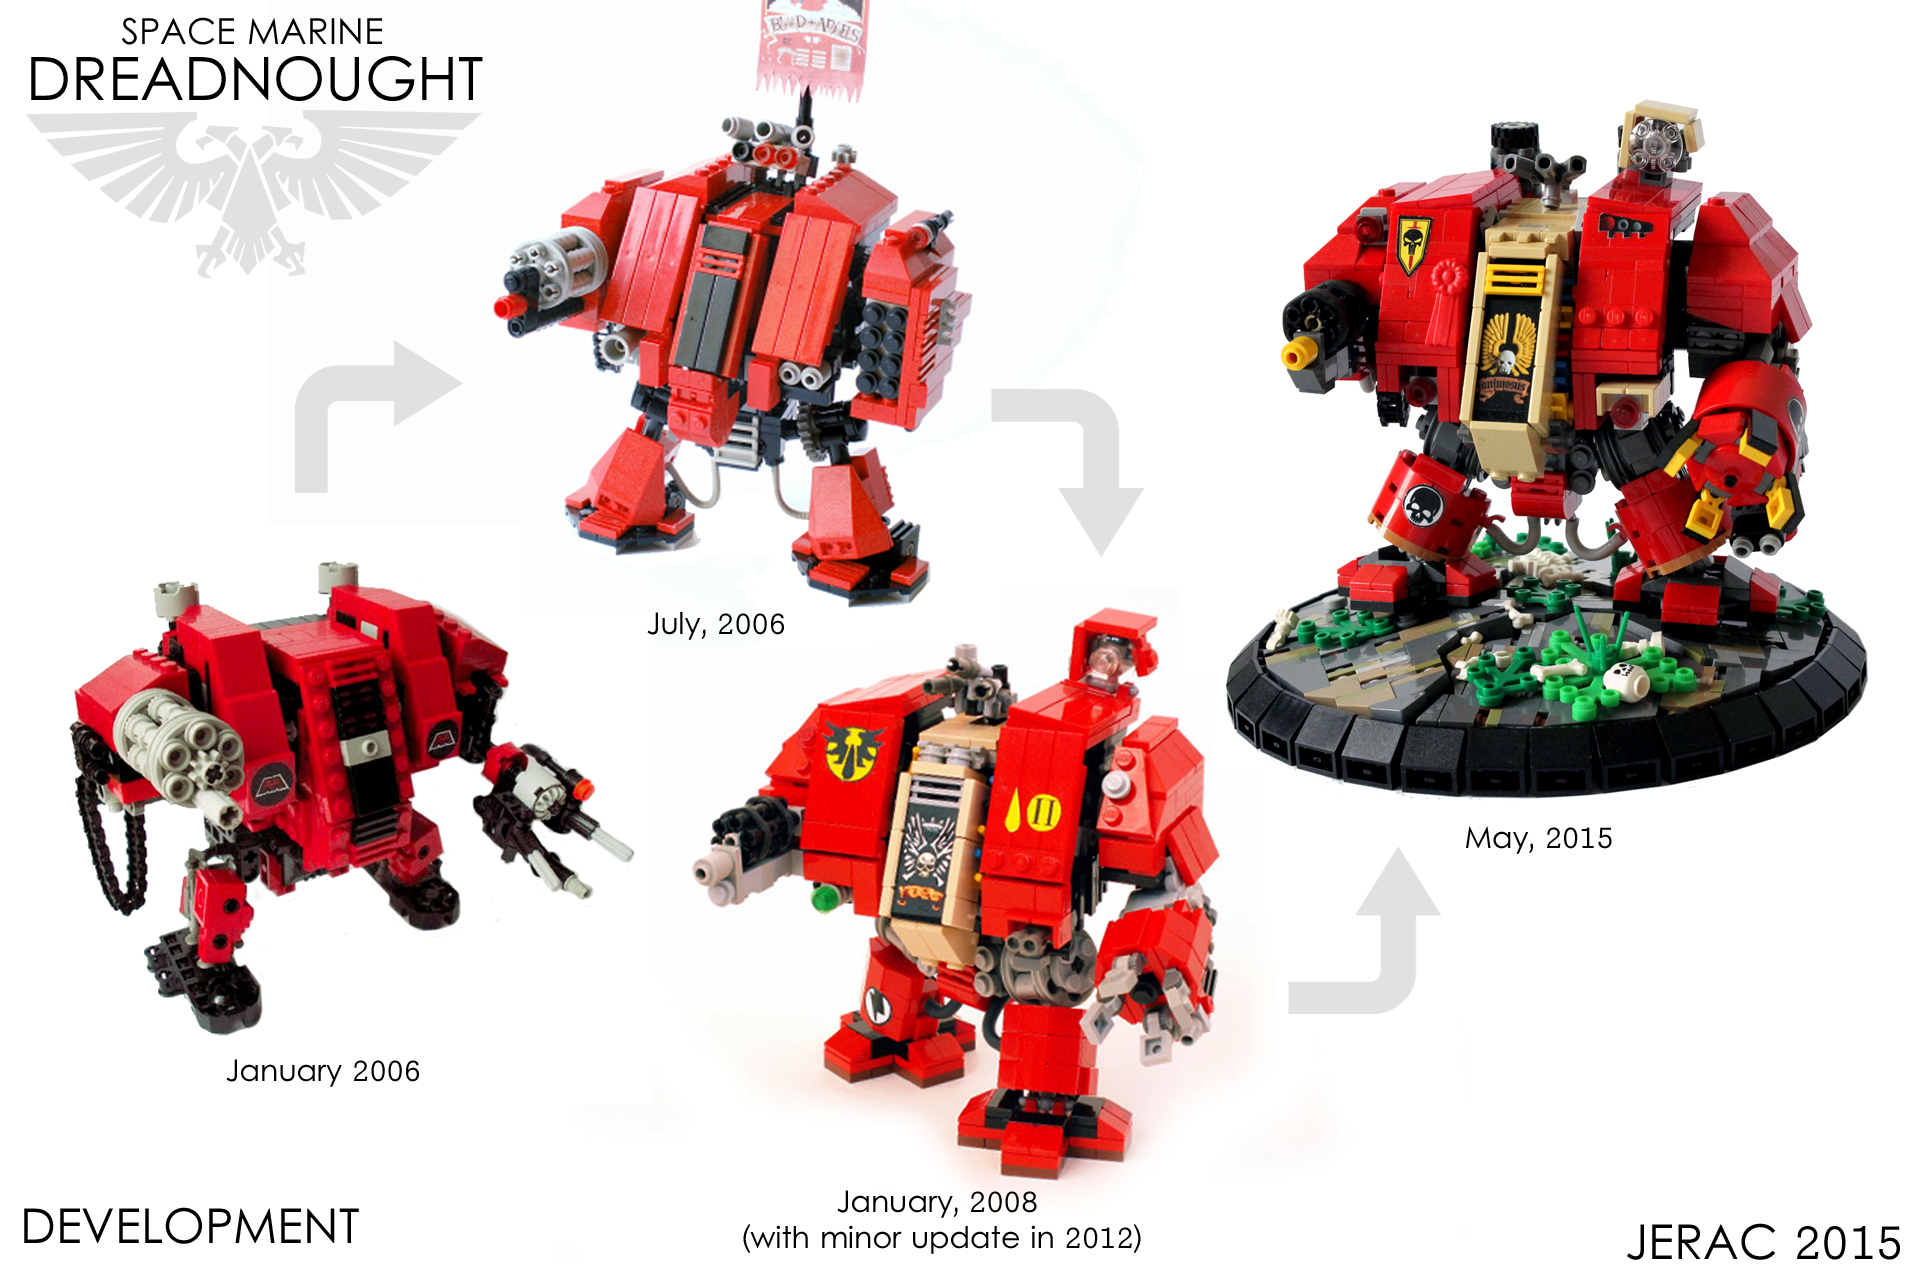 Evolution Dreadnought Space Marine Lego